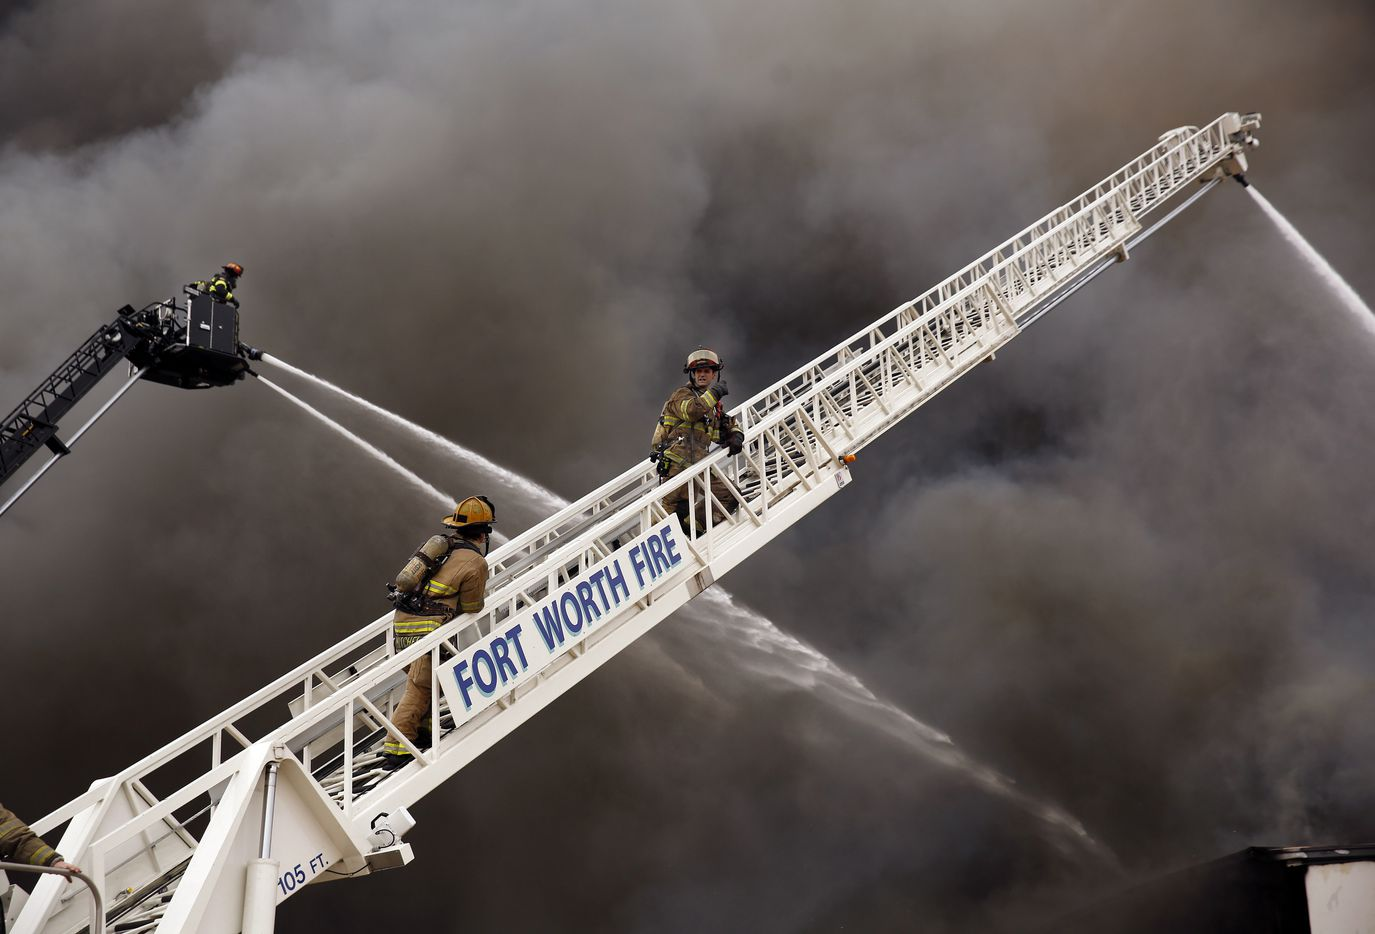 Fort Worth Fire Department Captain Jacob Henderson, right, and Connor Mitchell climb an aerial ladder as they and multiple fire departments respond to a large, 5-alarm fire at the Advanced Foam Recycling facility in Richland Hills, Texas, Thursday, February 25, 2021. Advanced Foam Recycling recycles materials to be processed and used for carpet underlay, pillows, and furniture, according to the company website. Over 125  firefighters from Richland Hills, Haltom City, North Richland Hills and Fort Worth firefighters assisted on the commercial structure fire in the 2500 block of Handley Ederville Road in E. Fort Worth. (Tom Fox/The Dallas Morning News)